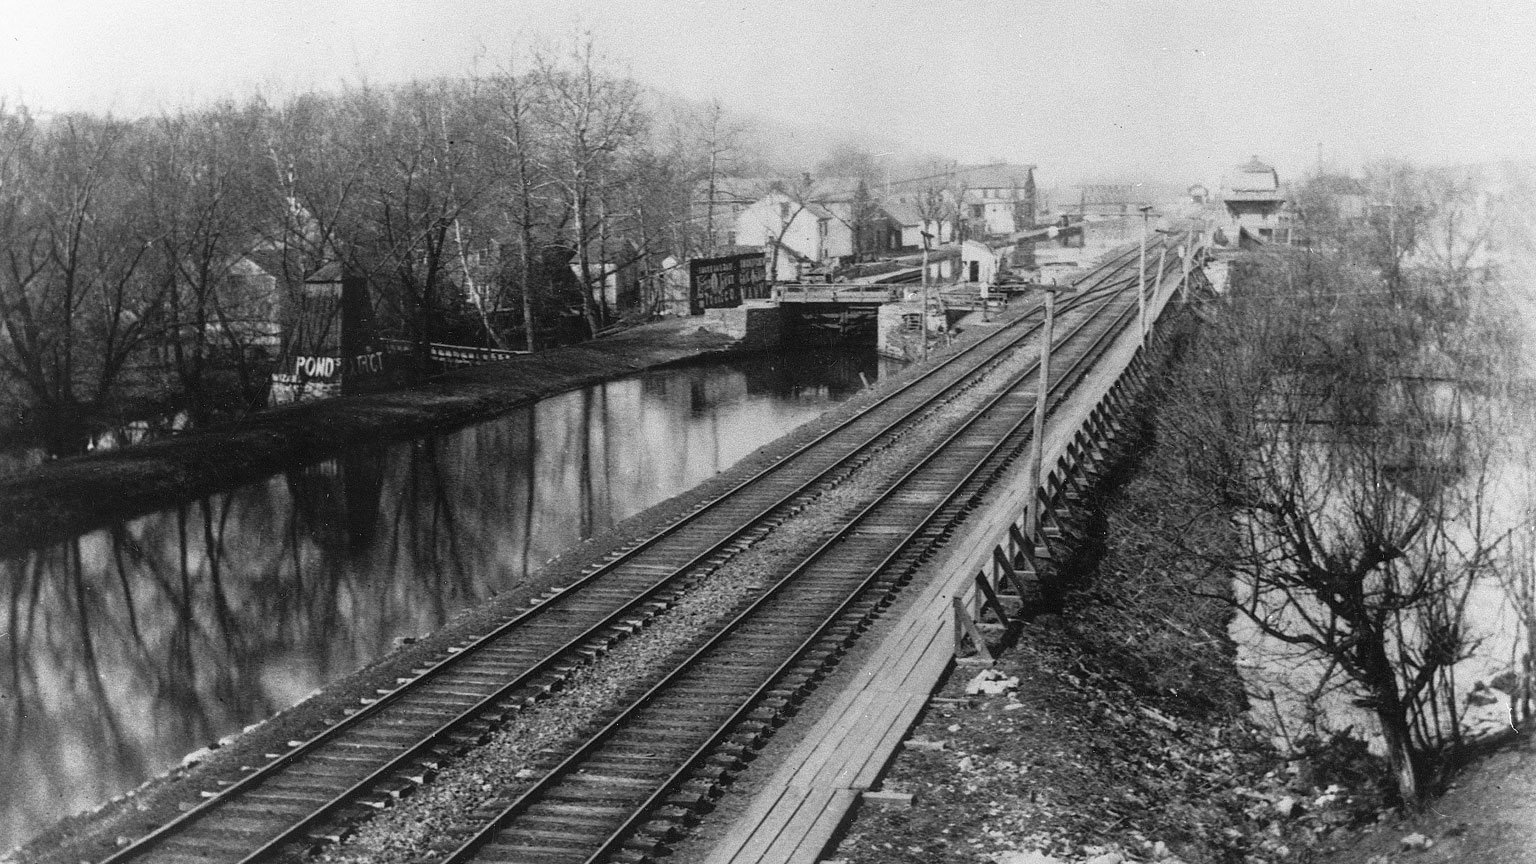 Railroads start to take over and canals slow down.